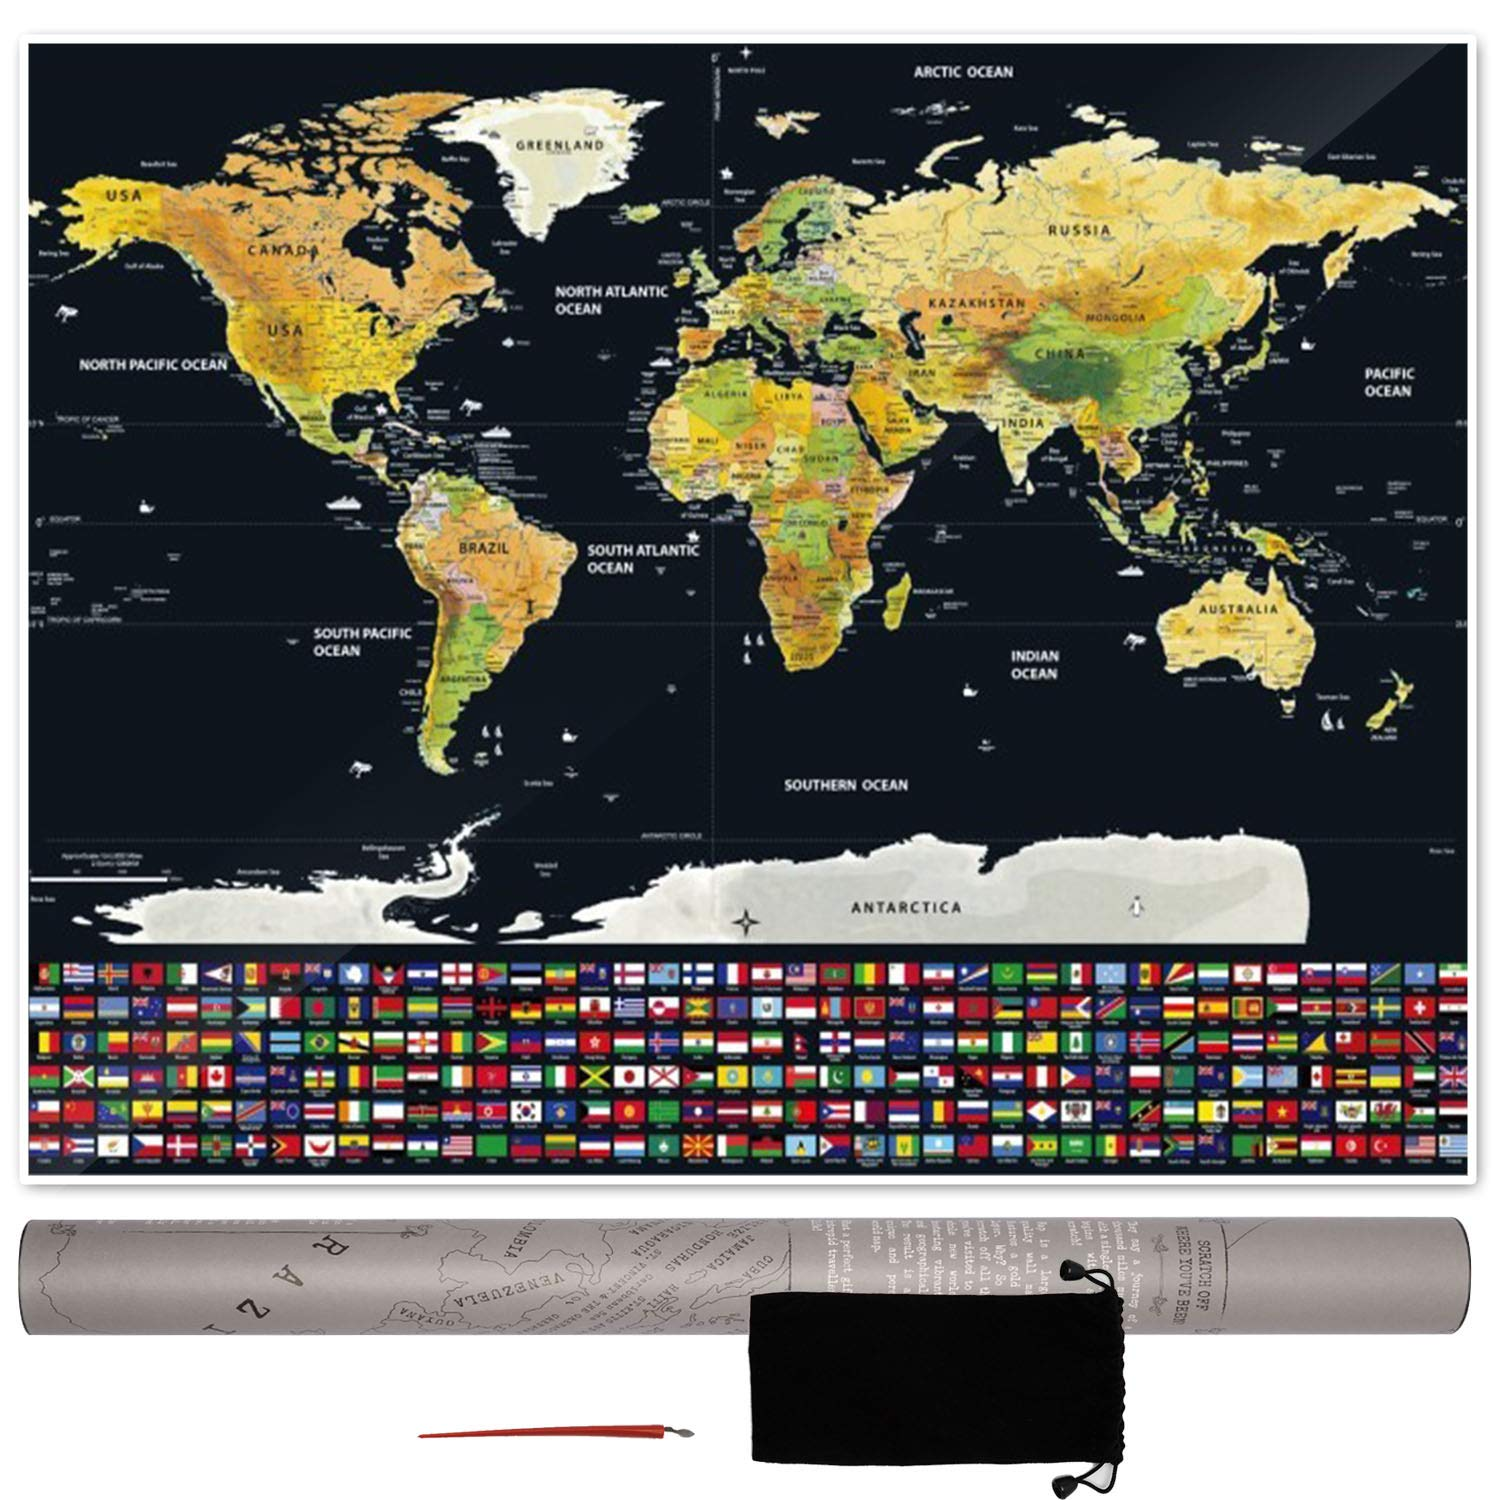 Extra Large Scratch Off Map of The World Poster by JöT - Appease Your Wanderlust with Our Premium Quality Scratchable Travel Tracker with Accessories - Perfect Gift for Kids, Travelers, Globetrotters